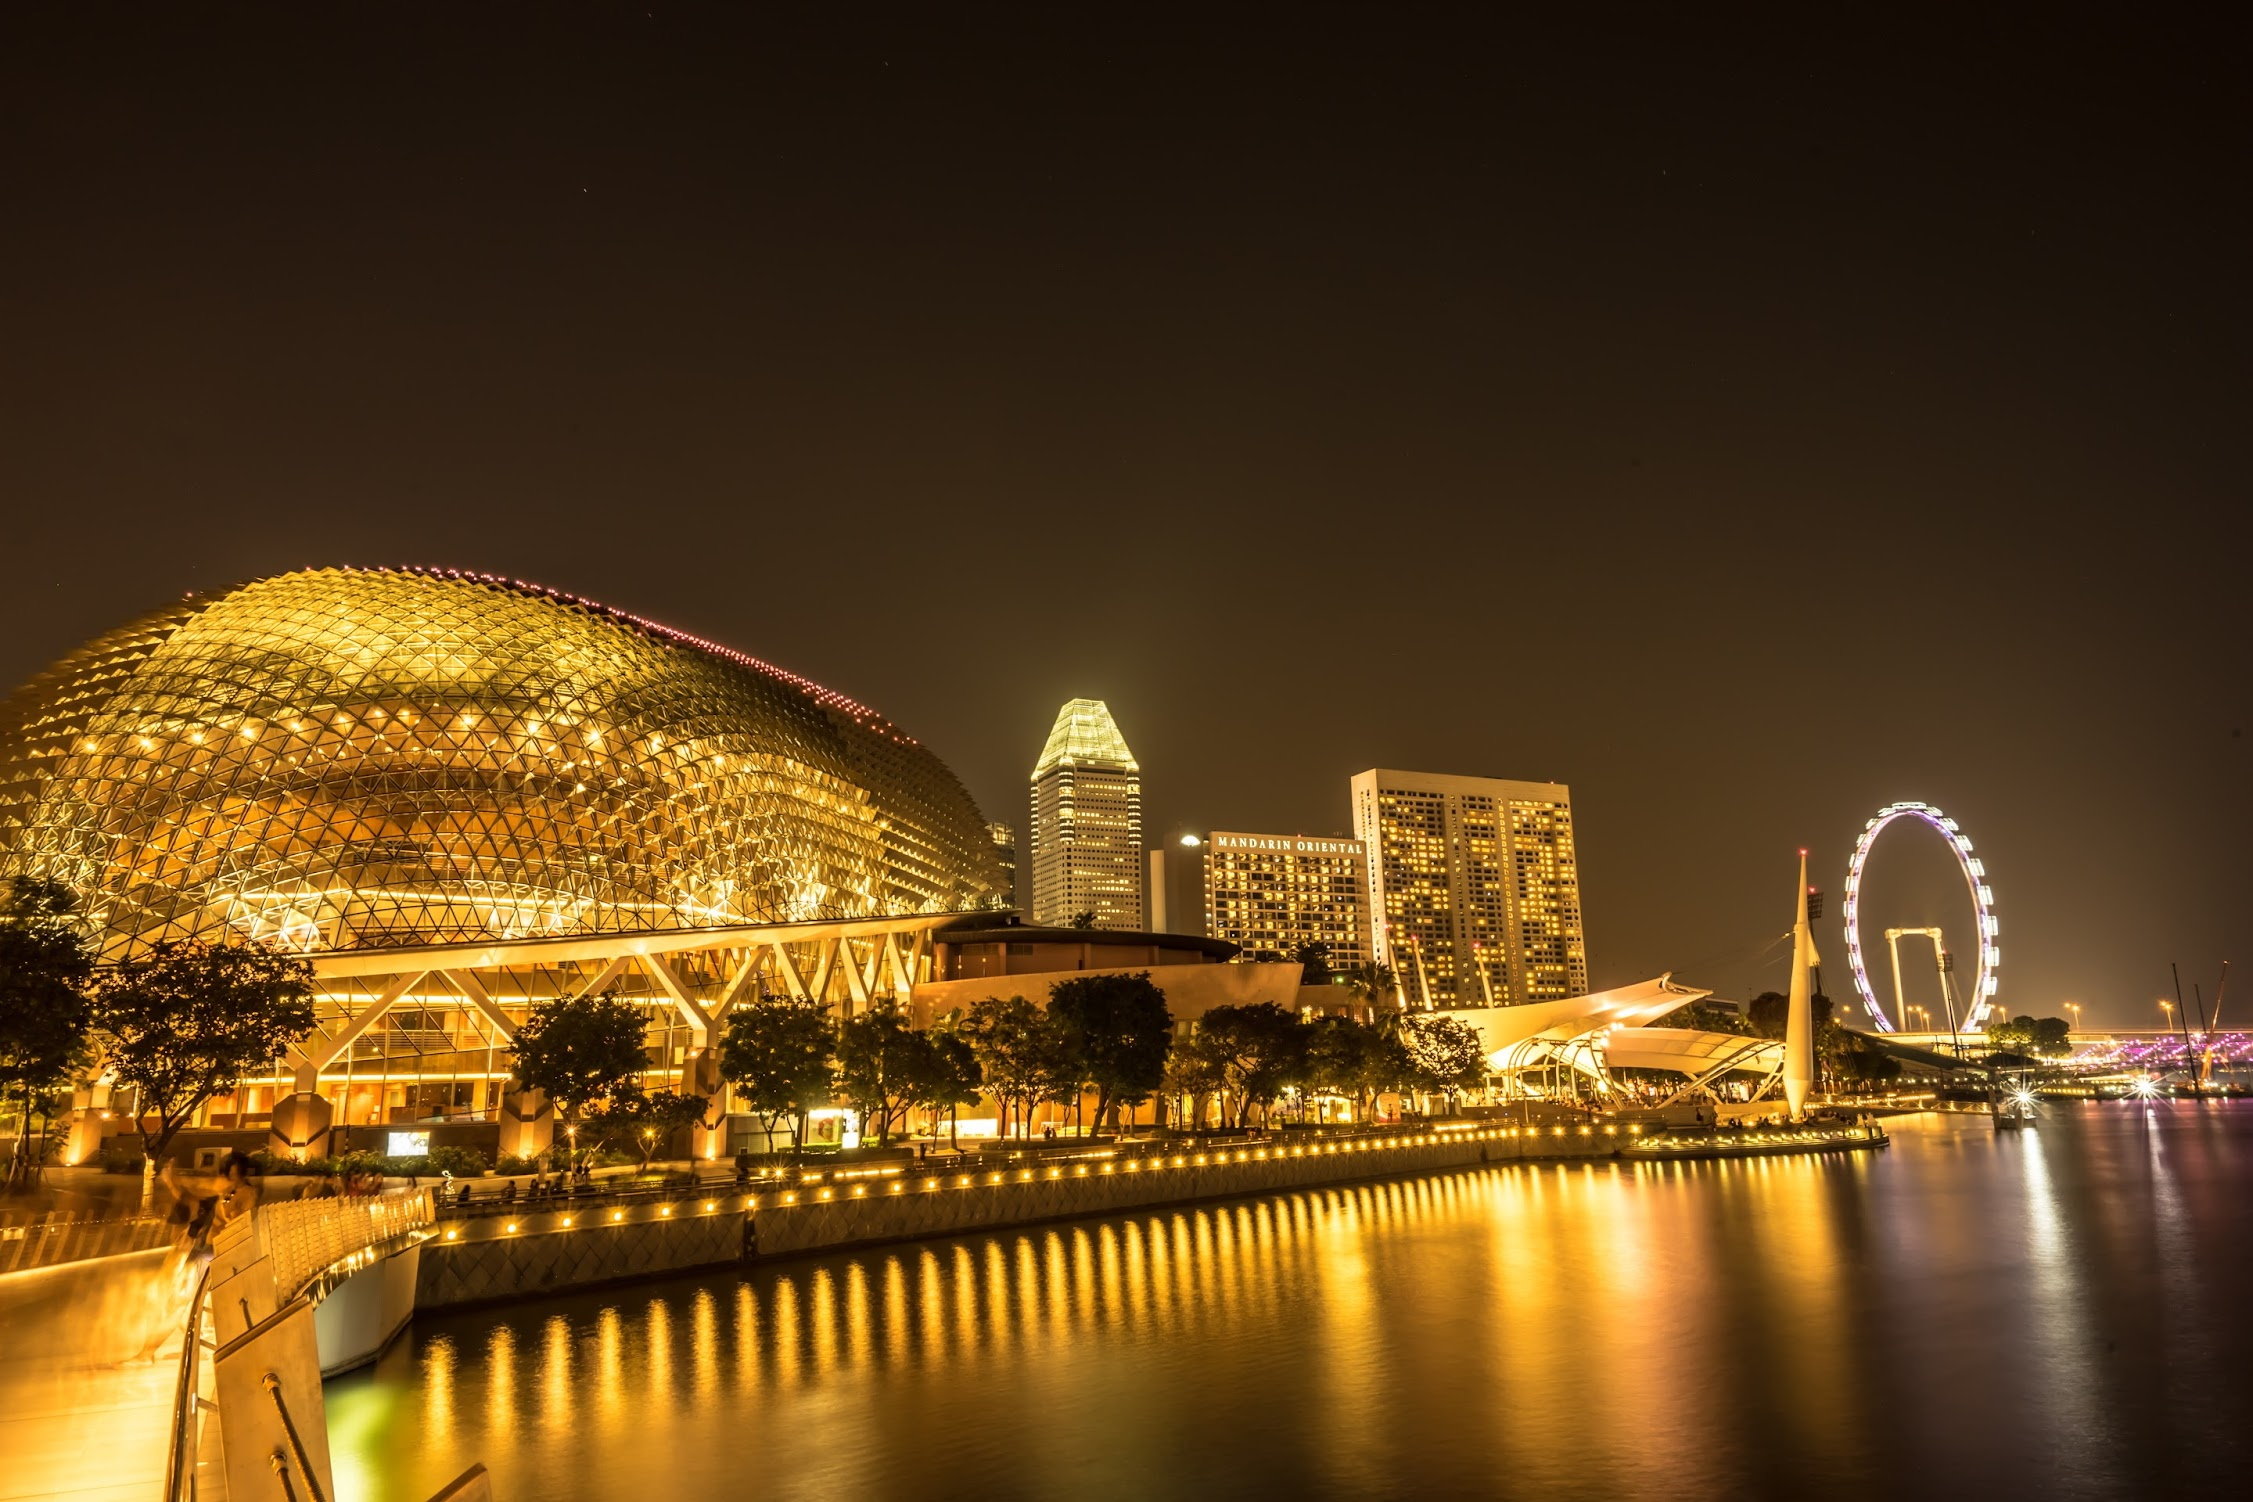 Singapore Esplanade night view1